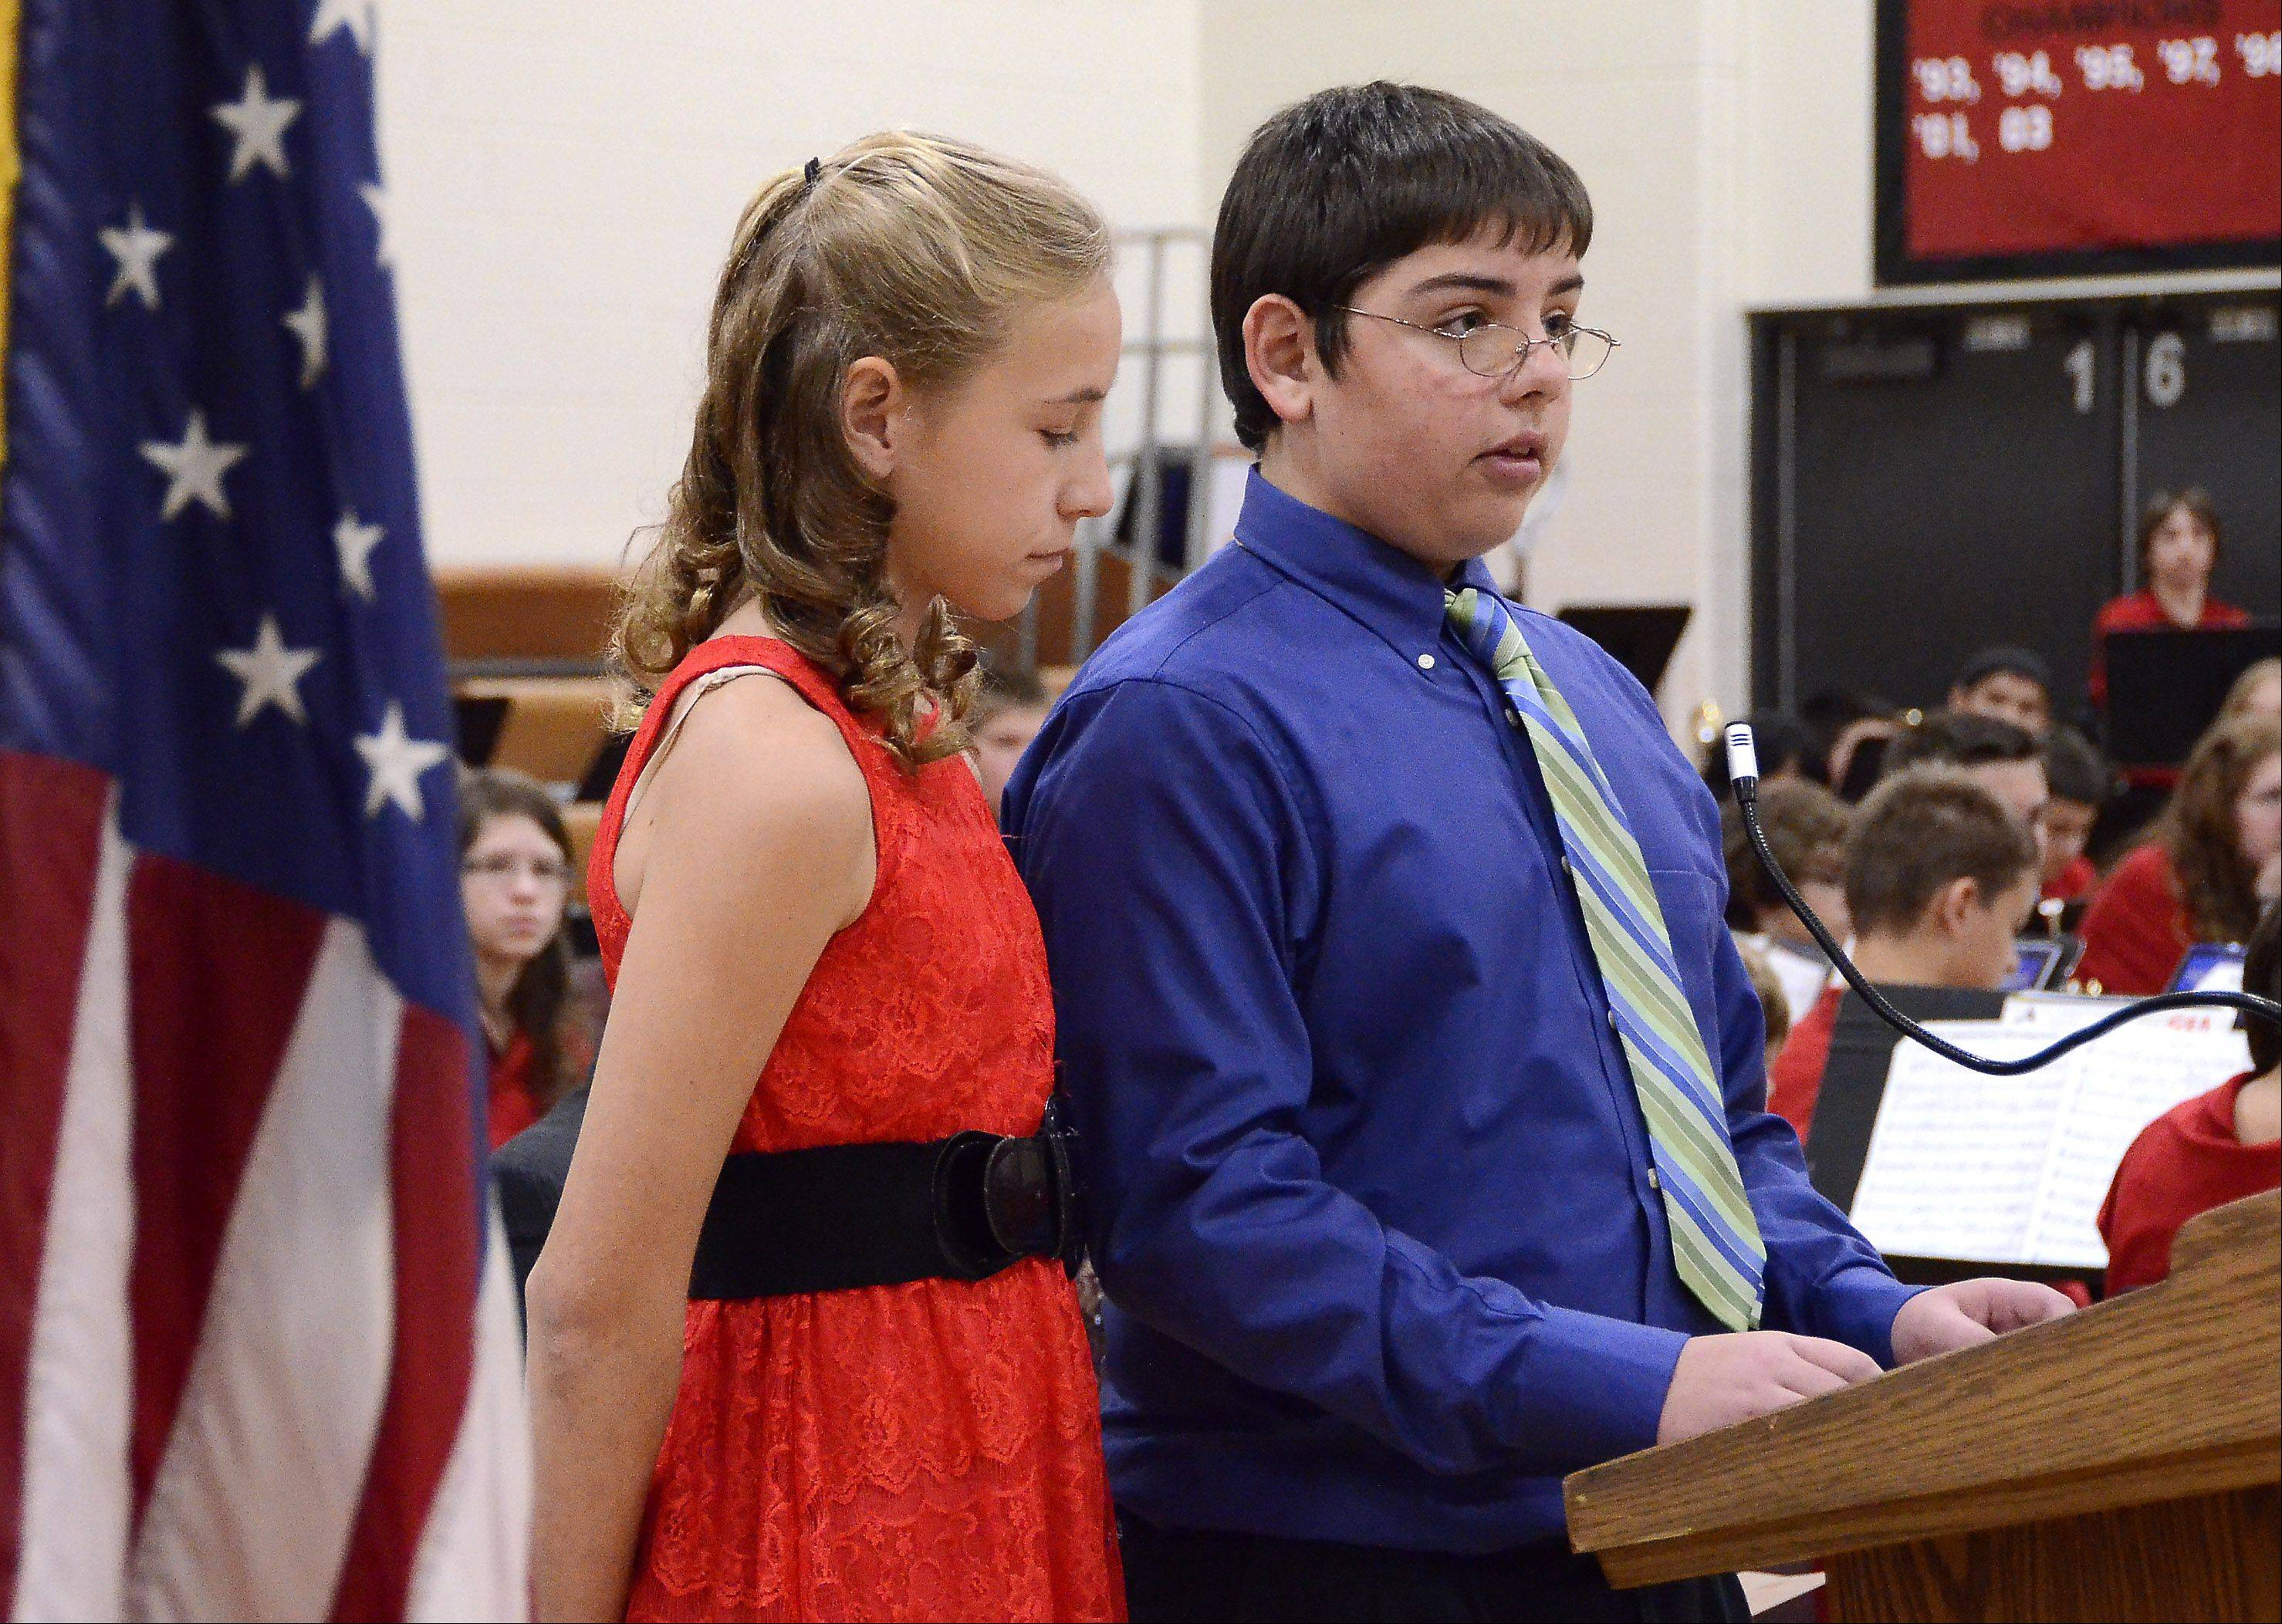 Eighth graders Ashley Boldt of Arlington Heights and Joey Knapik of Prospect Heights speak of the flag at the Veterans Day assembly Friday at MacArthur Middle School in Prospect Heights.